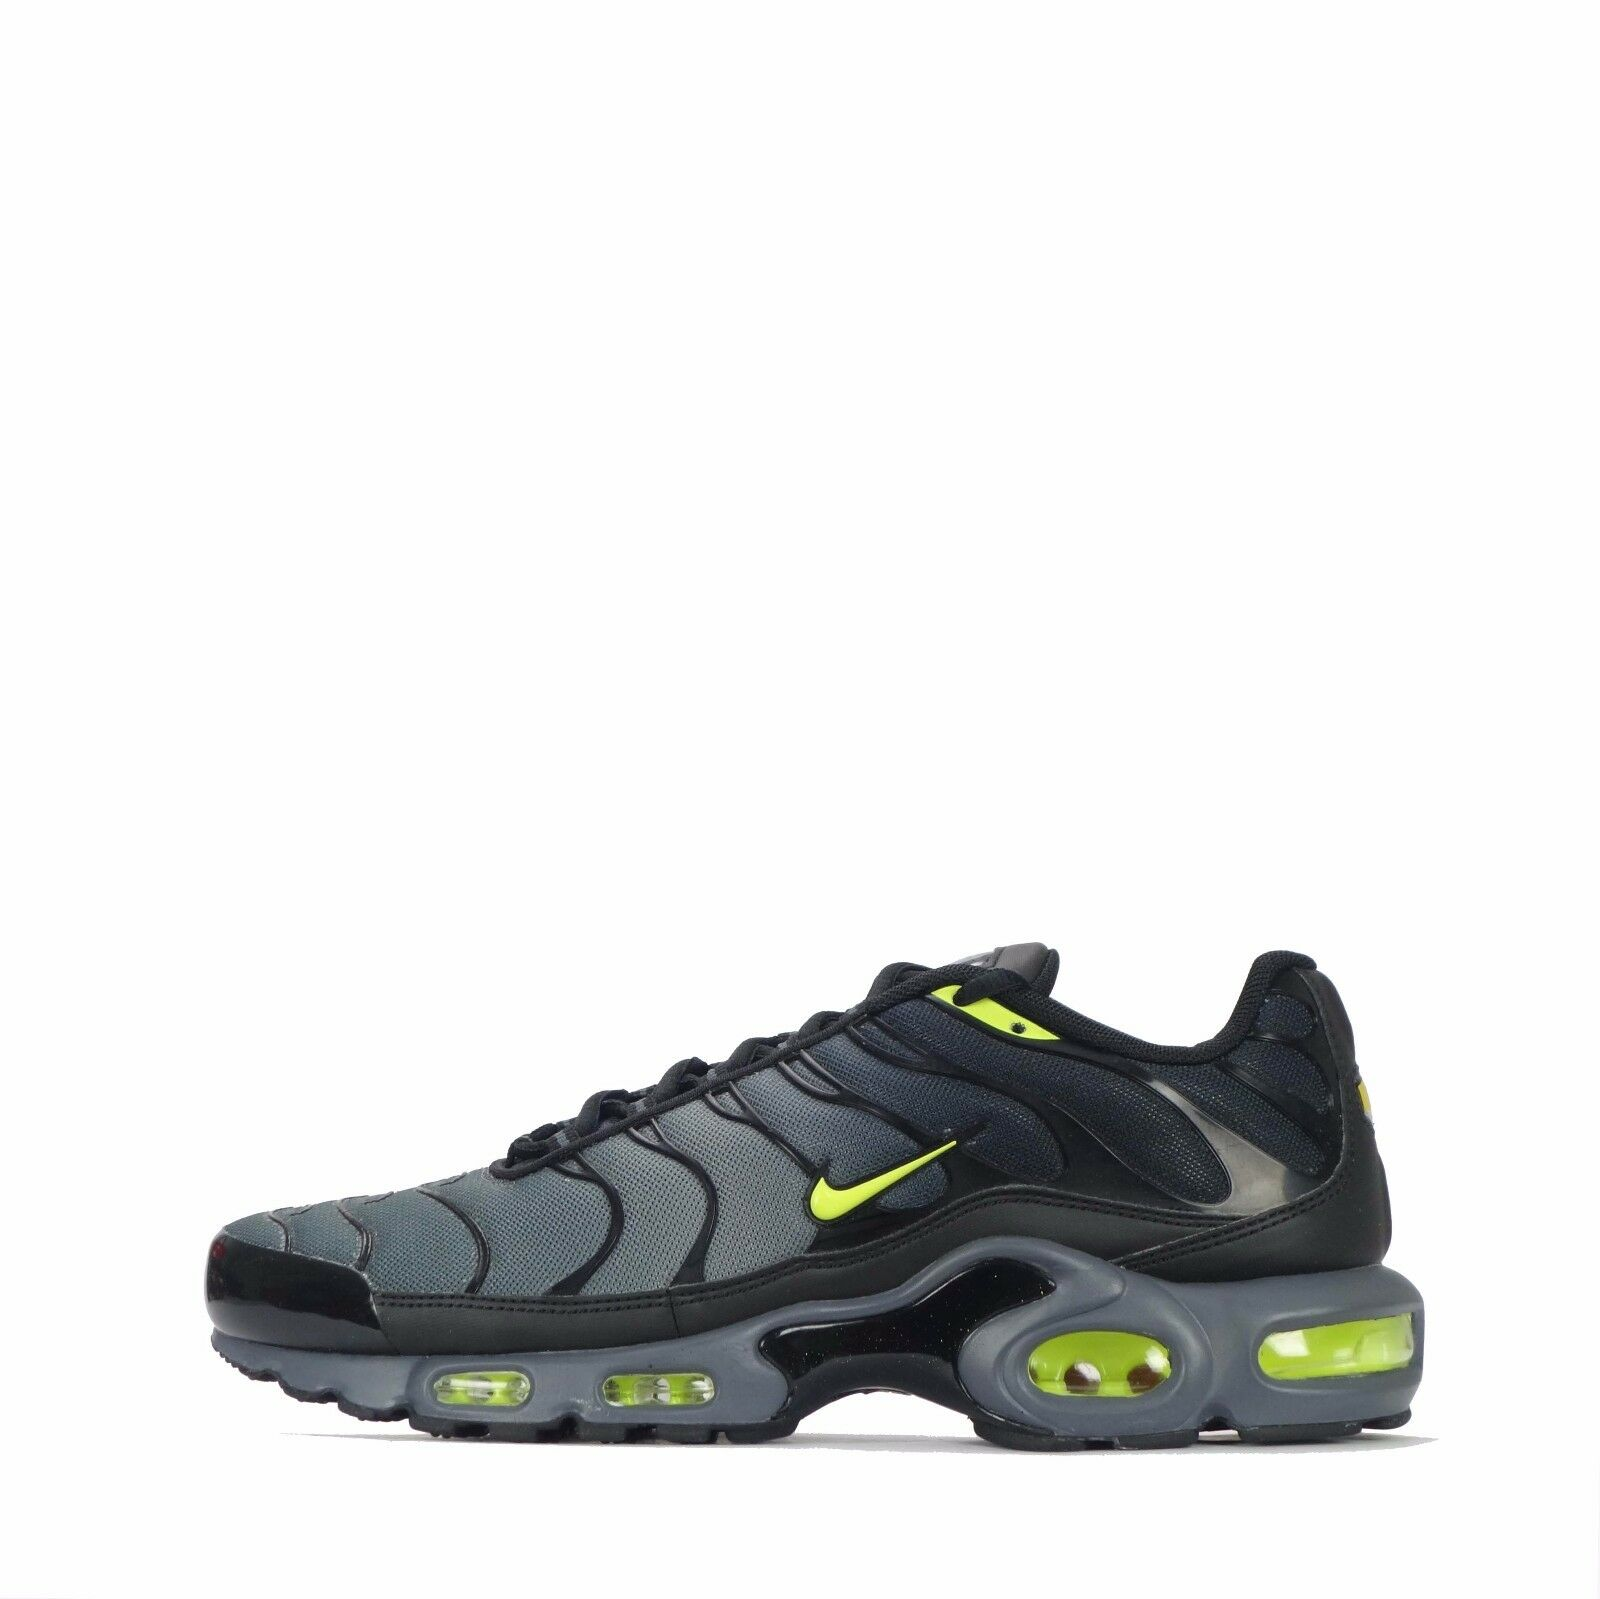 Nike Air Max Plus Plus Plus TN1 Tuned Men's shoes Dark Grey Volt 93d1c7